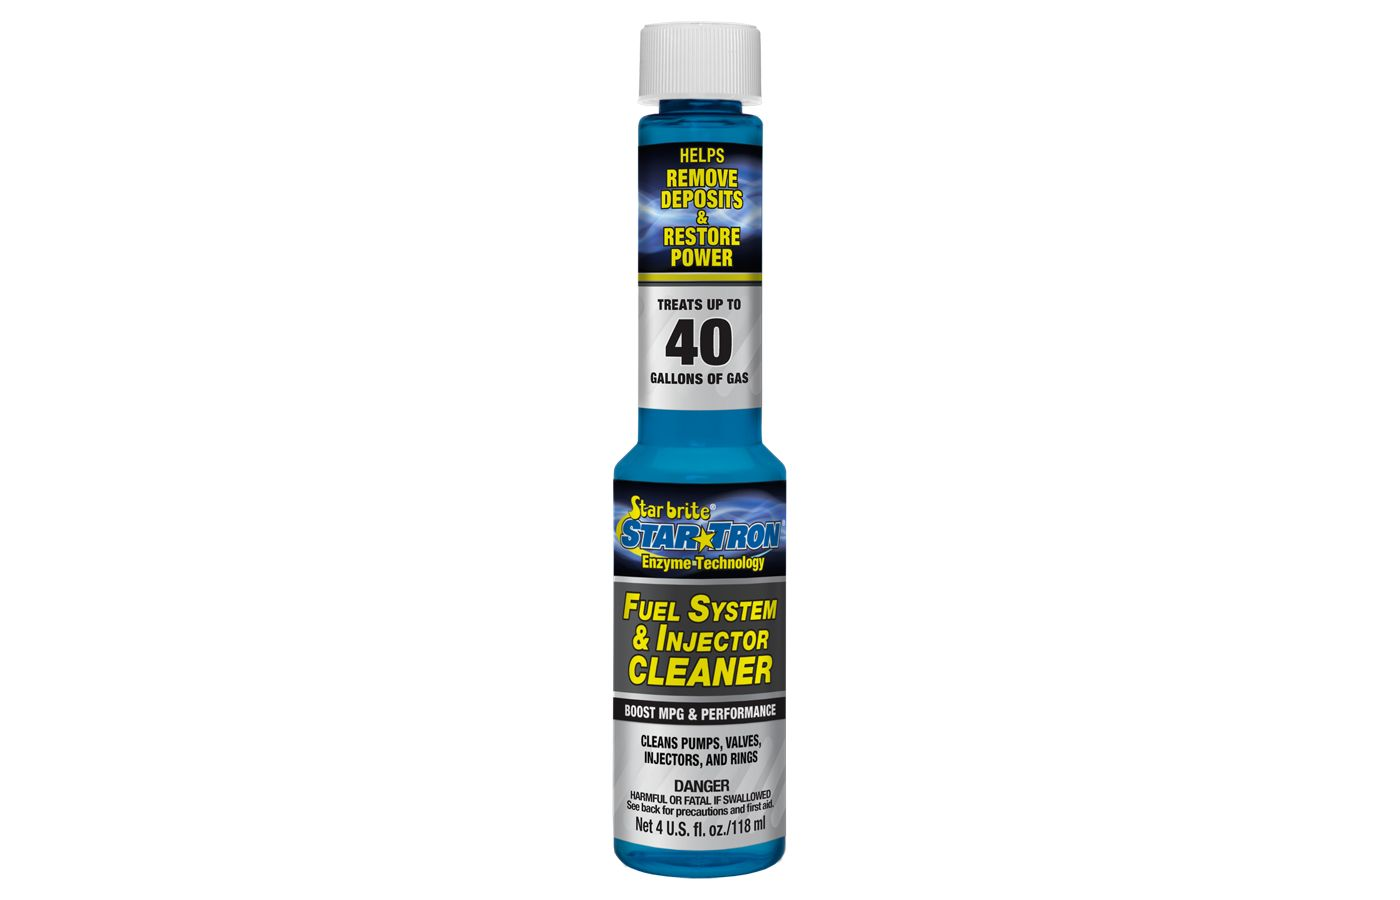 Star brite Star Tron Fuel System and Injector Cleaner